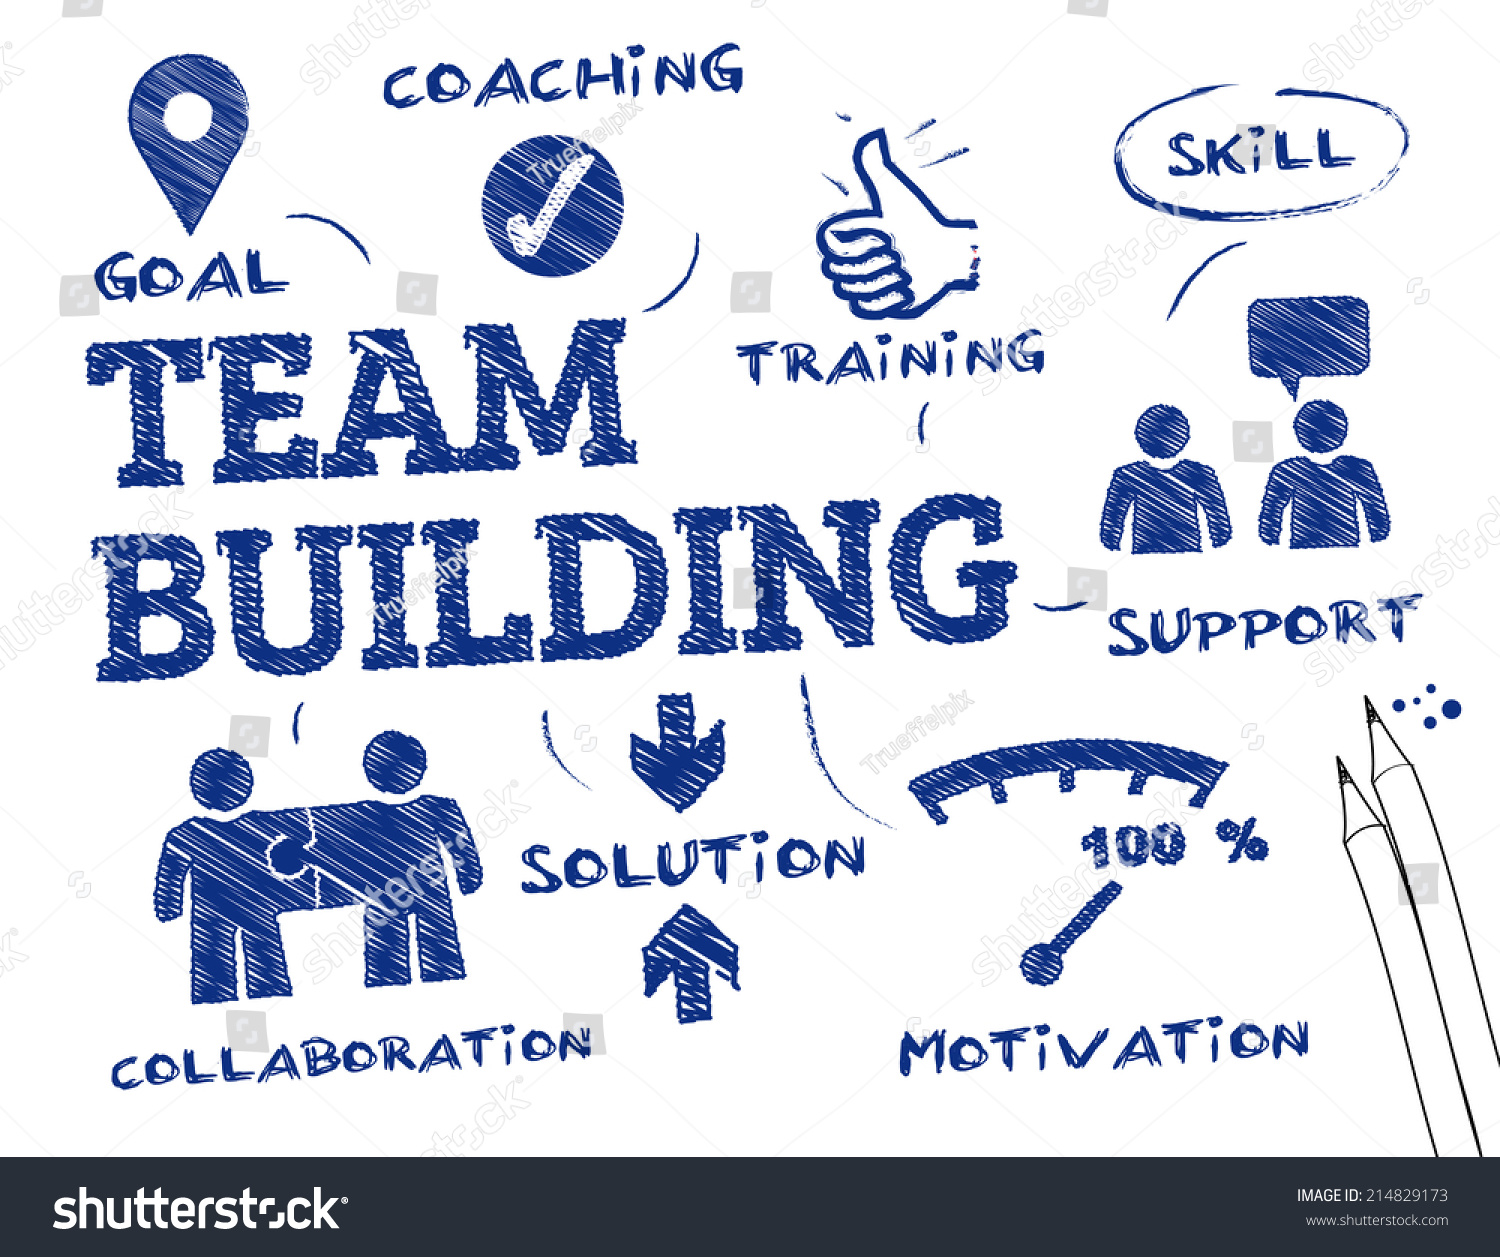 promoting critical thinking skills in the classroom 10 team-building games that promote critical 10 team-building games that promote collaborative critical thinking you can purchase a classroom skills.